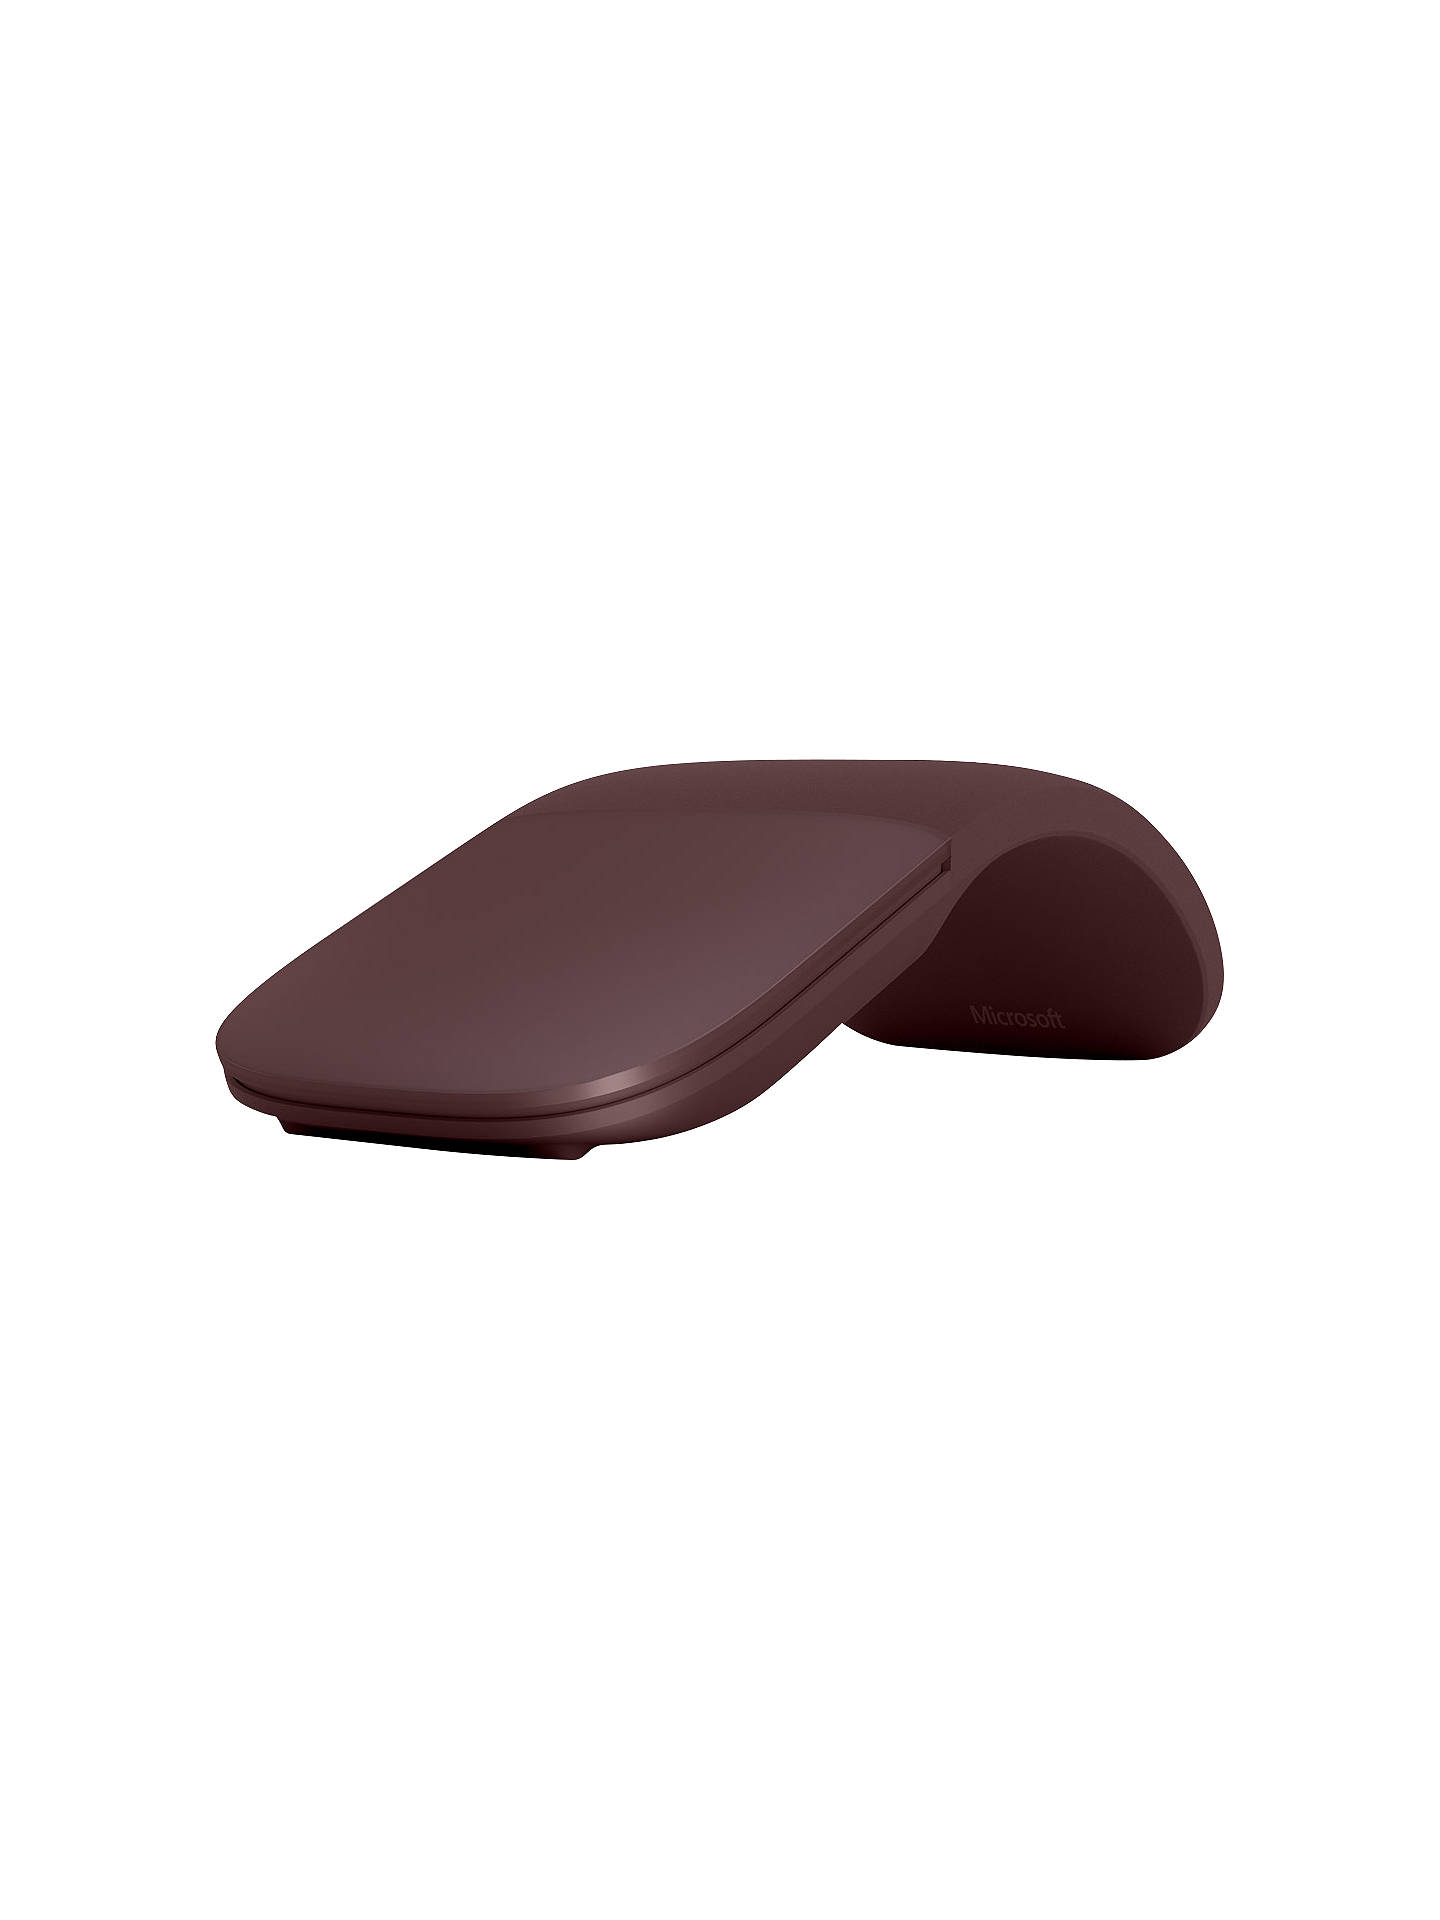 d31699cc0dd Buy Microsoft Surface Arc Bluetooth Wireless Mouse, Burgundy Online at  johnlewis.com ...